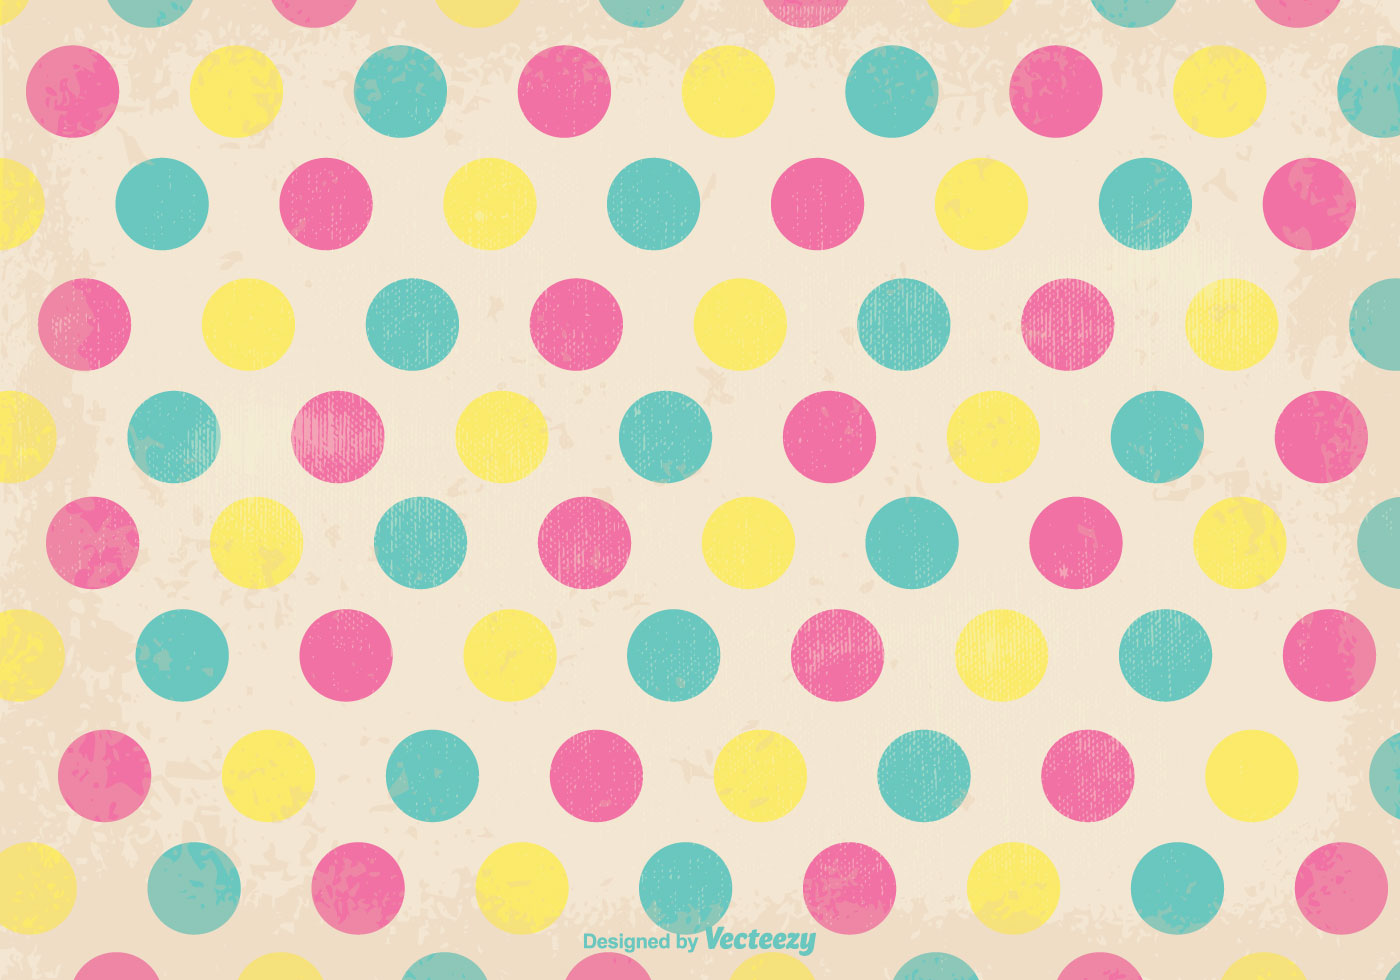 old retro polka dot style background download free